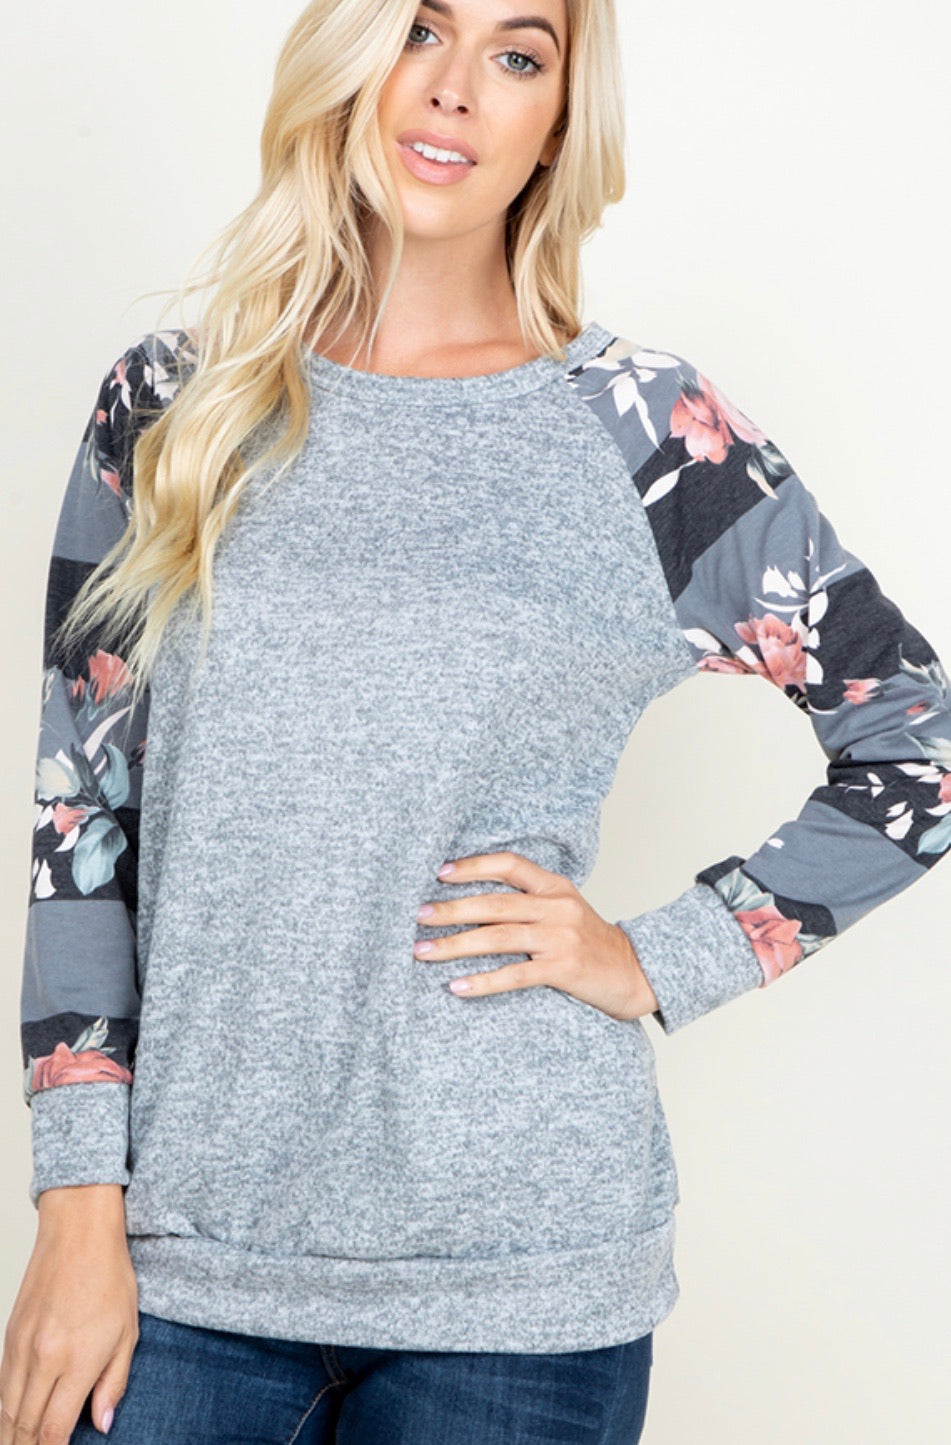 927 - PLUS Floral & Stripe Sleeve Sweatshirt